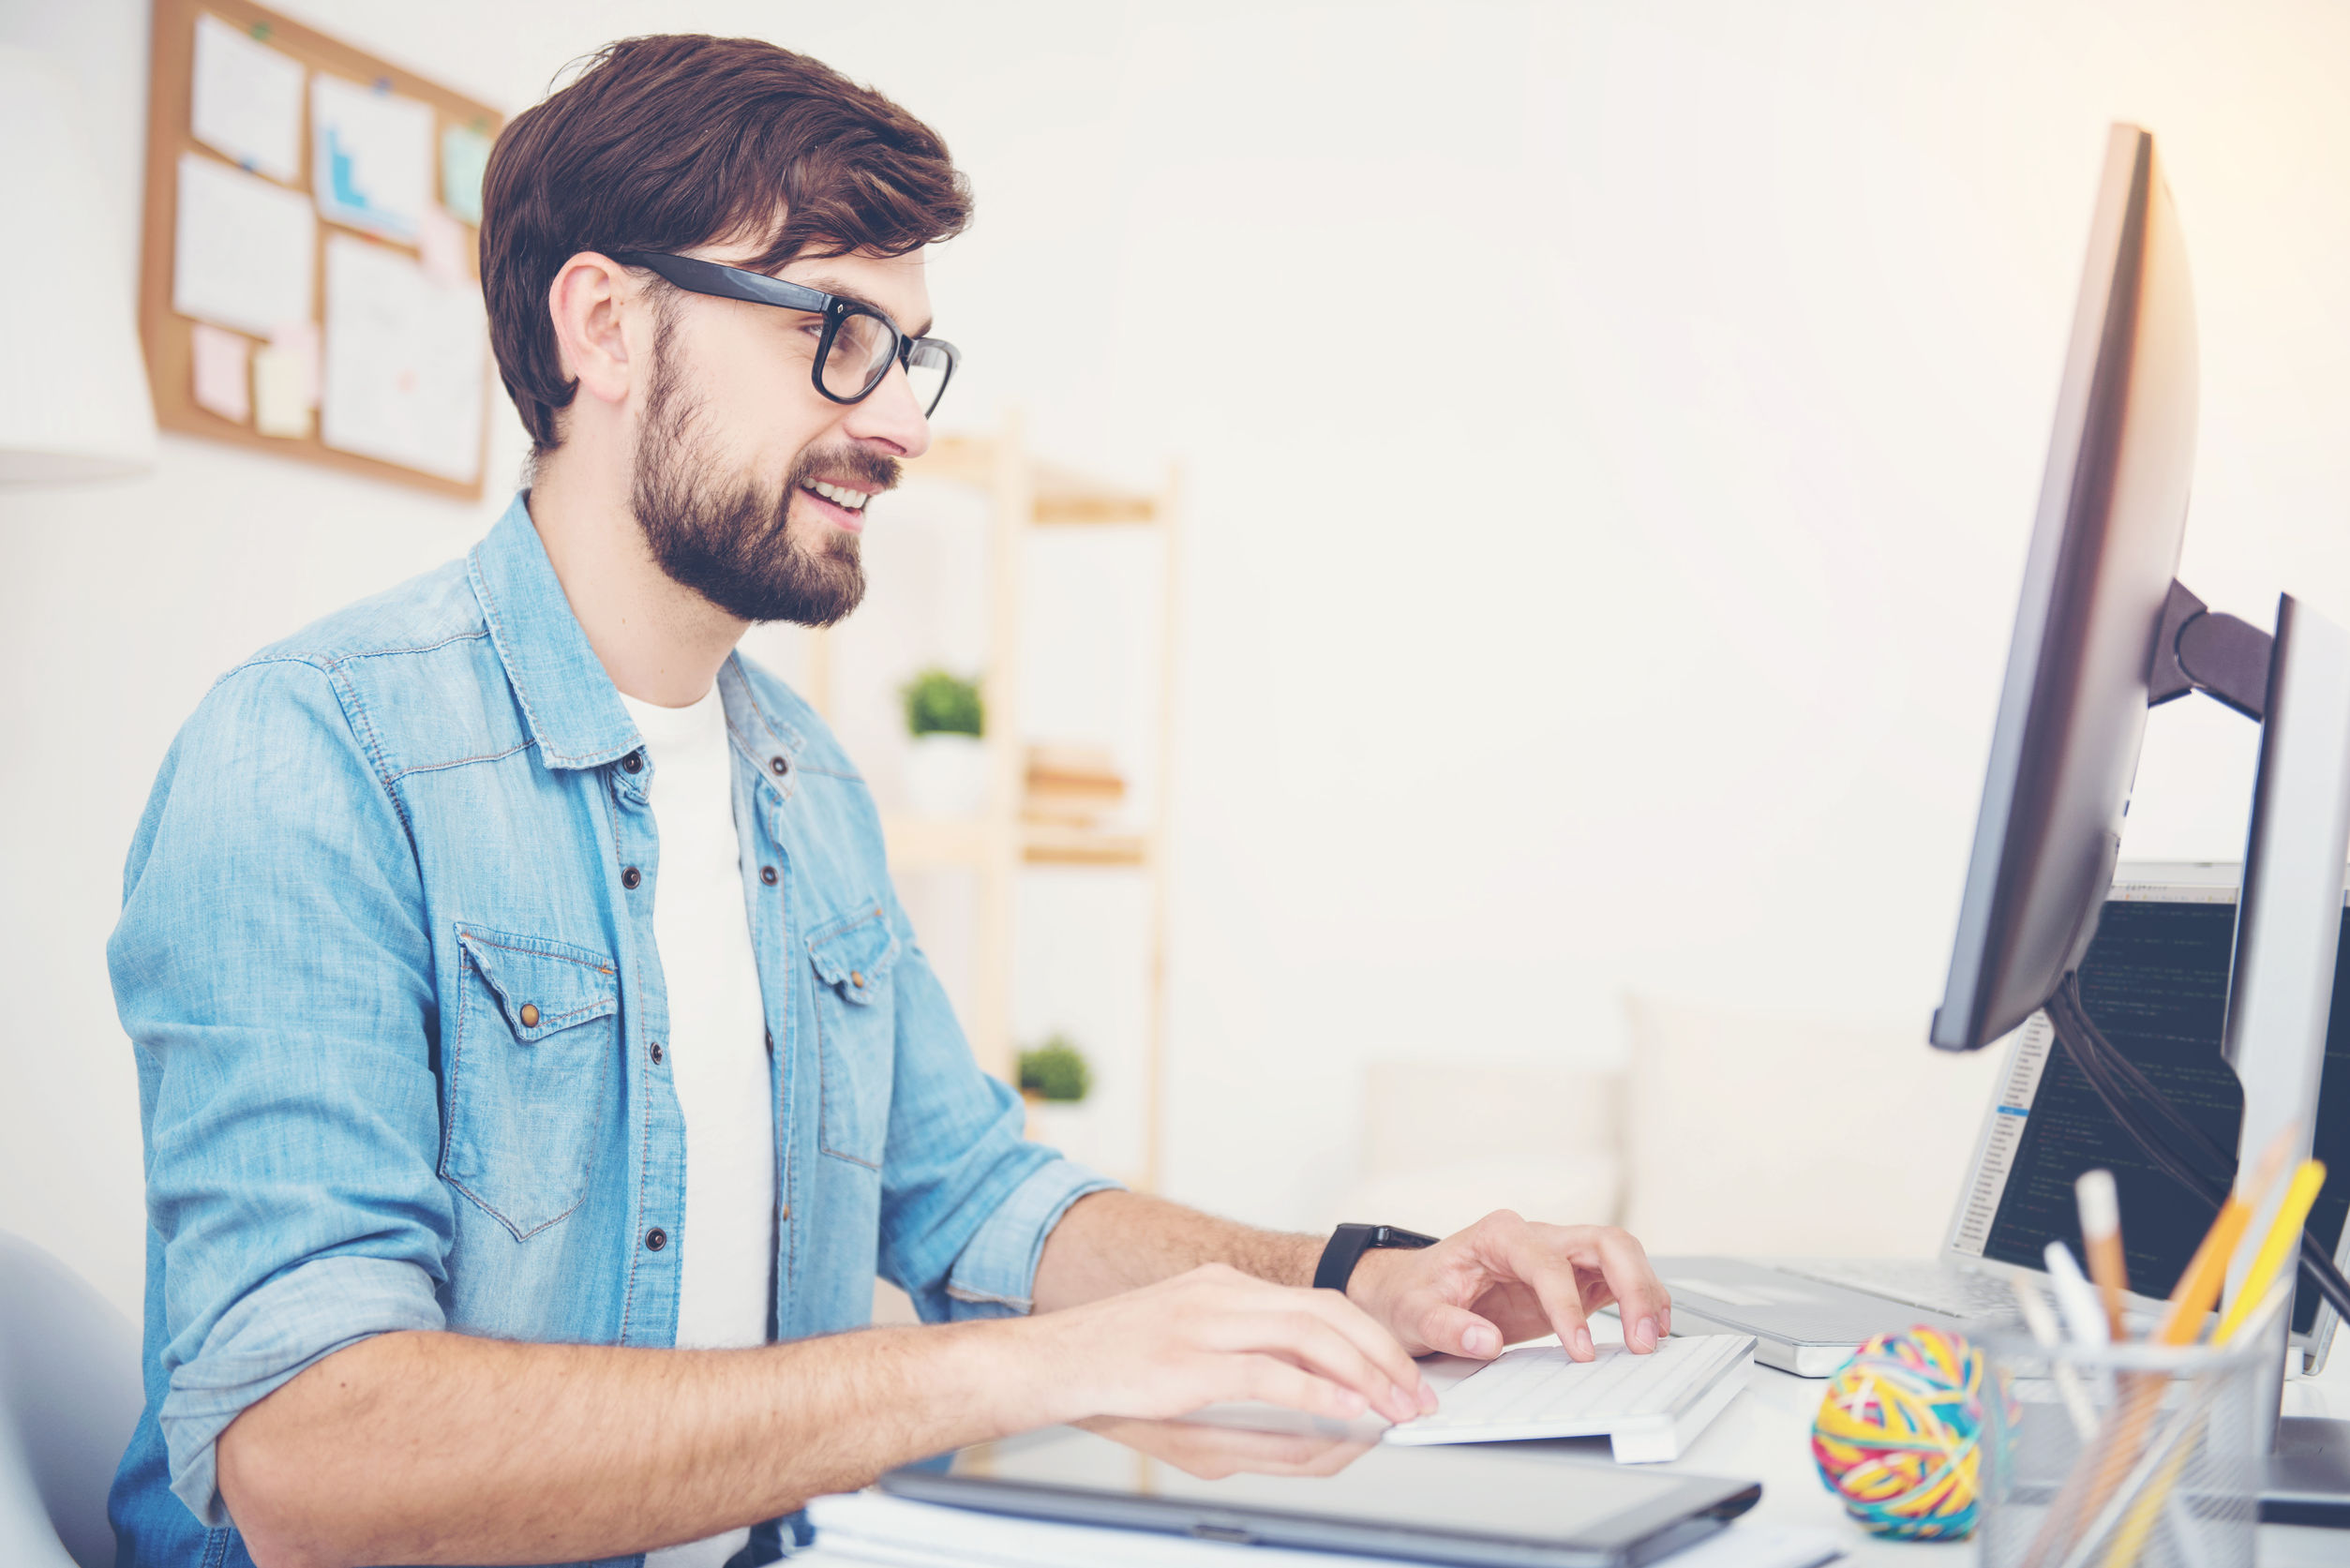 64095839 - it goes good. smiling young successful man wearing glasses programming in an office while using computer and laptop.